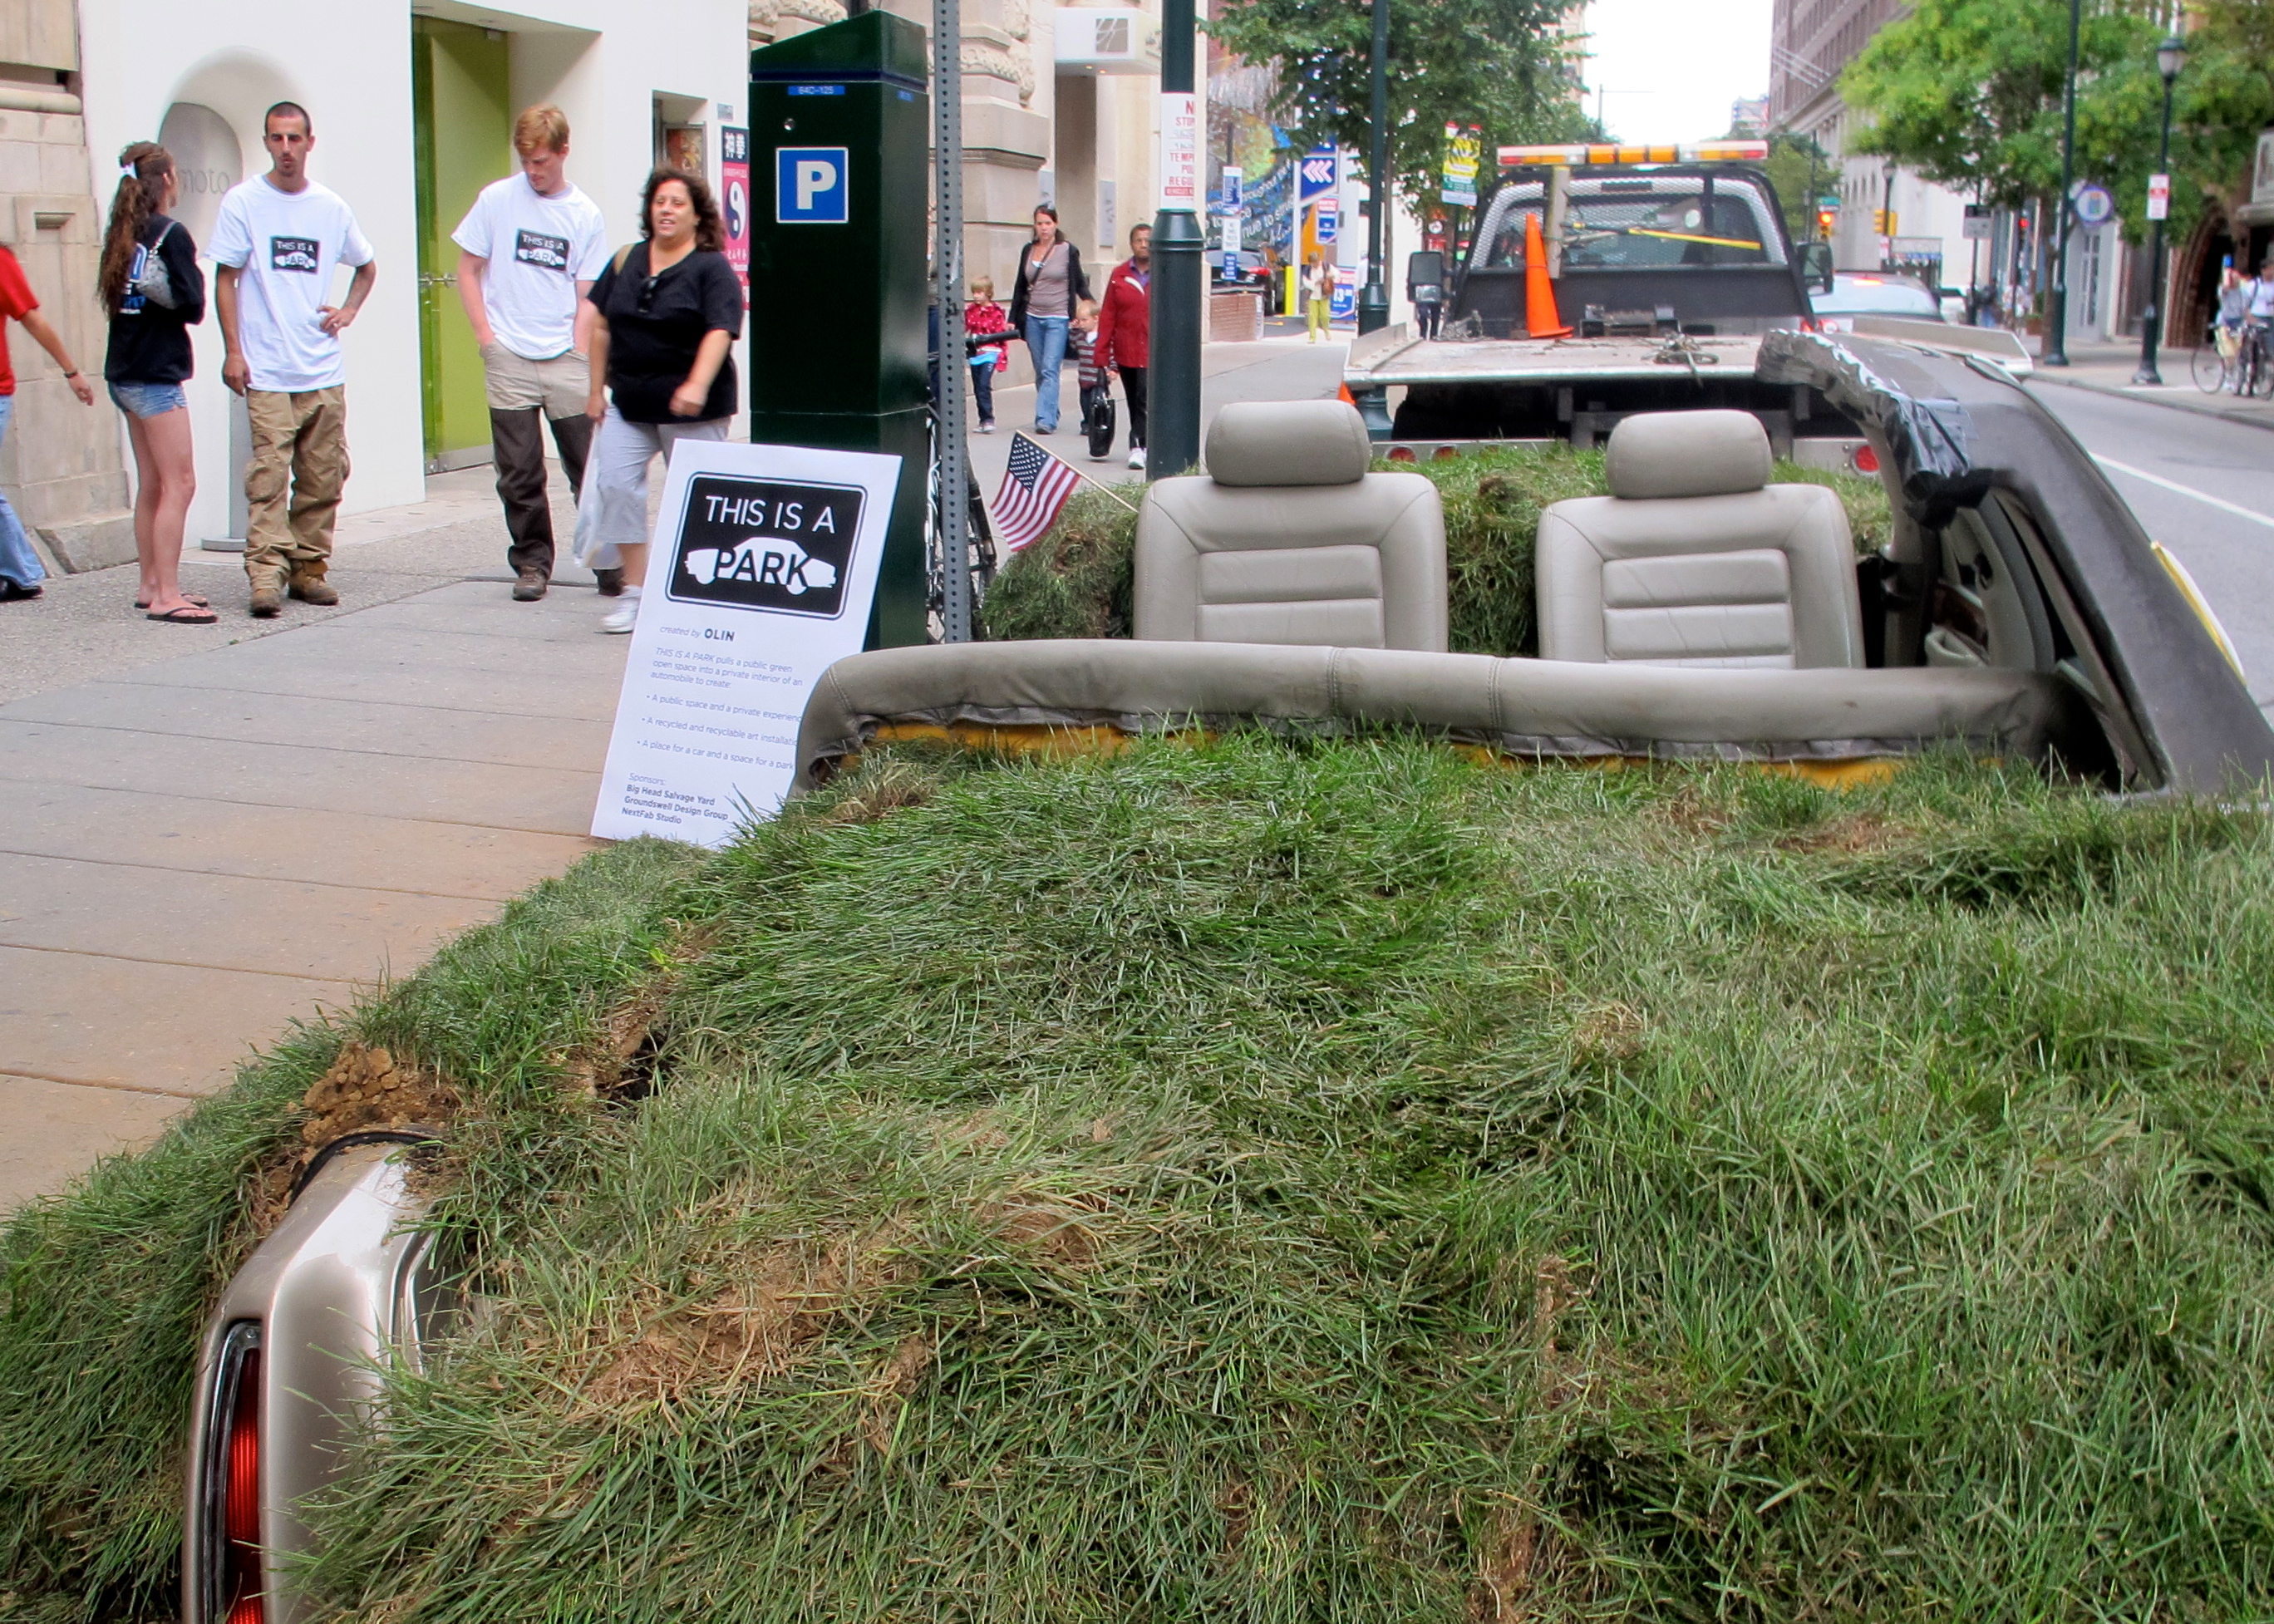 Meet up on Wednesday to discuss this year's Park(ing) Day.